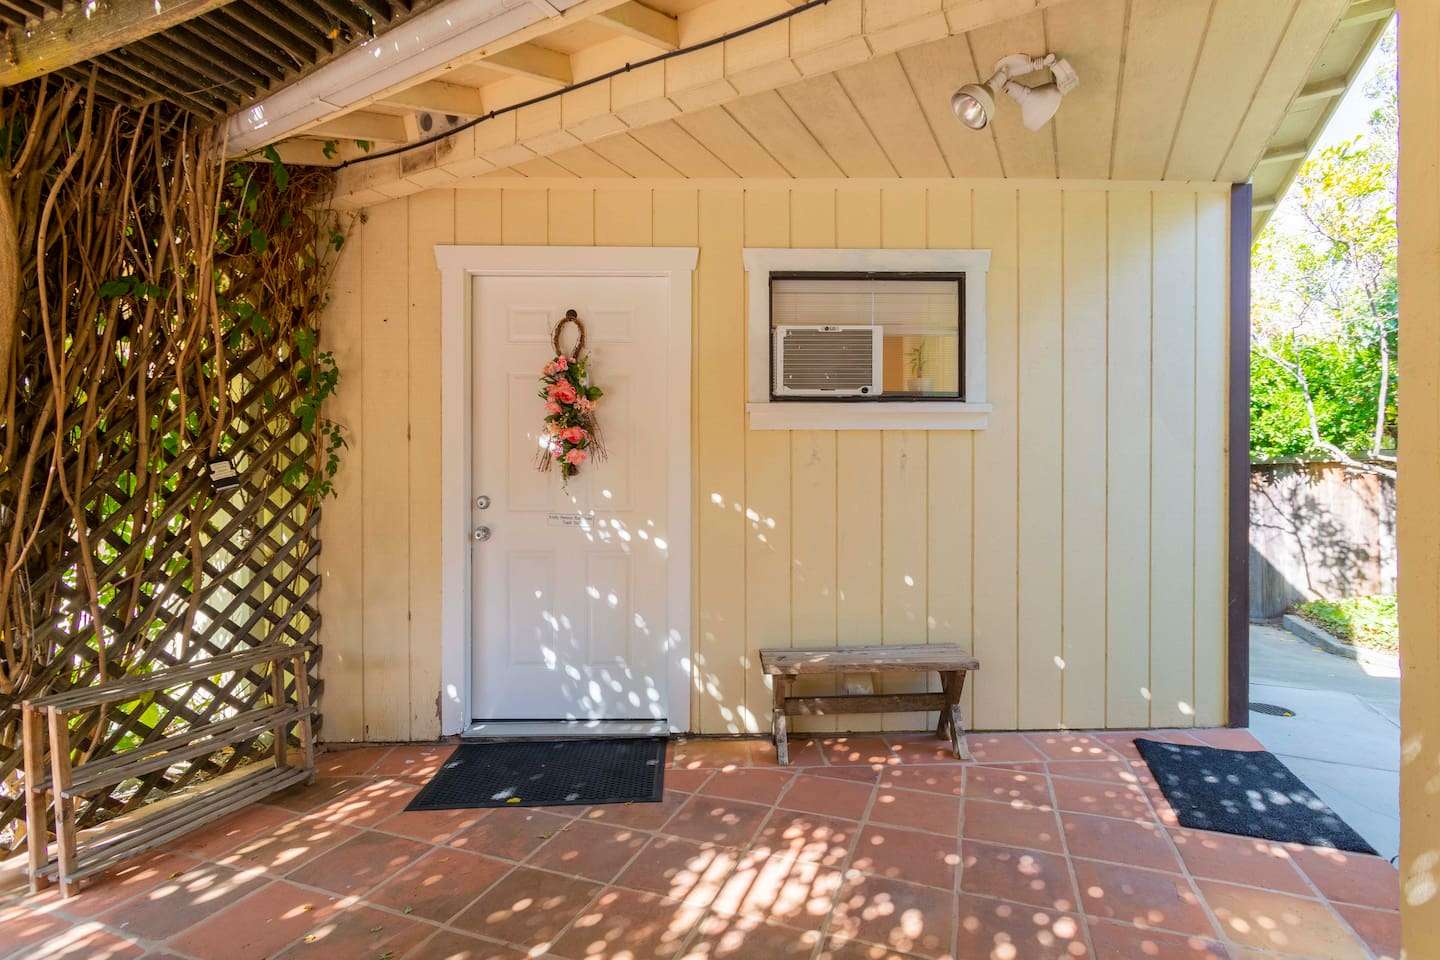 Sweet studio cottage - your home away from home